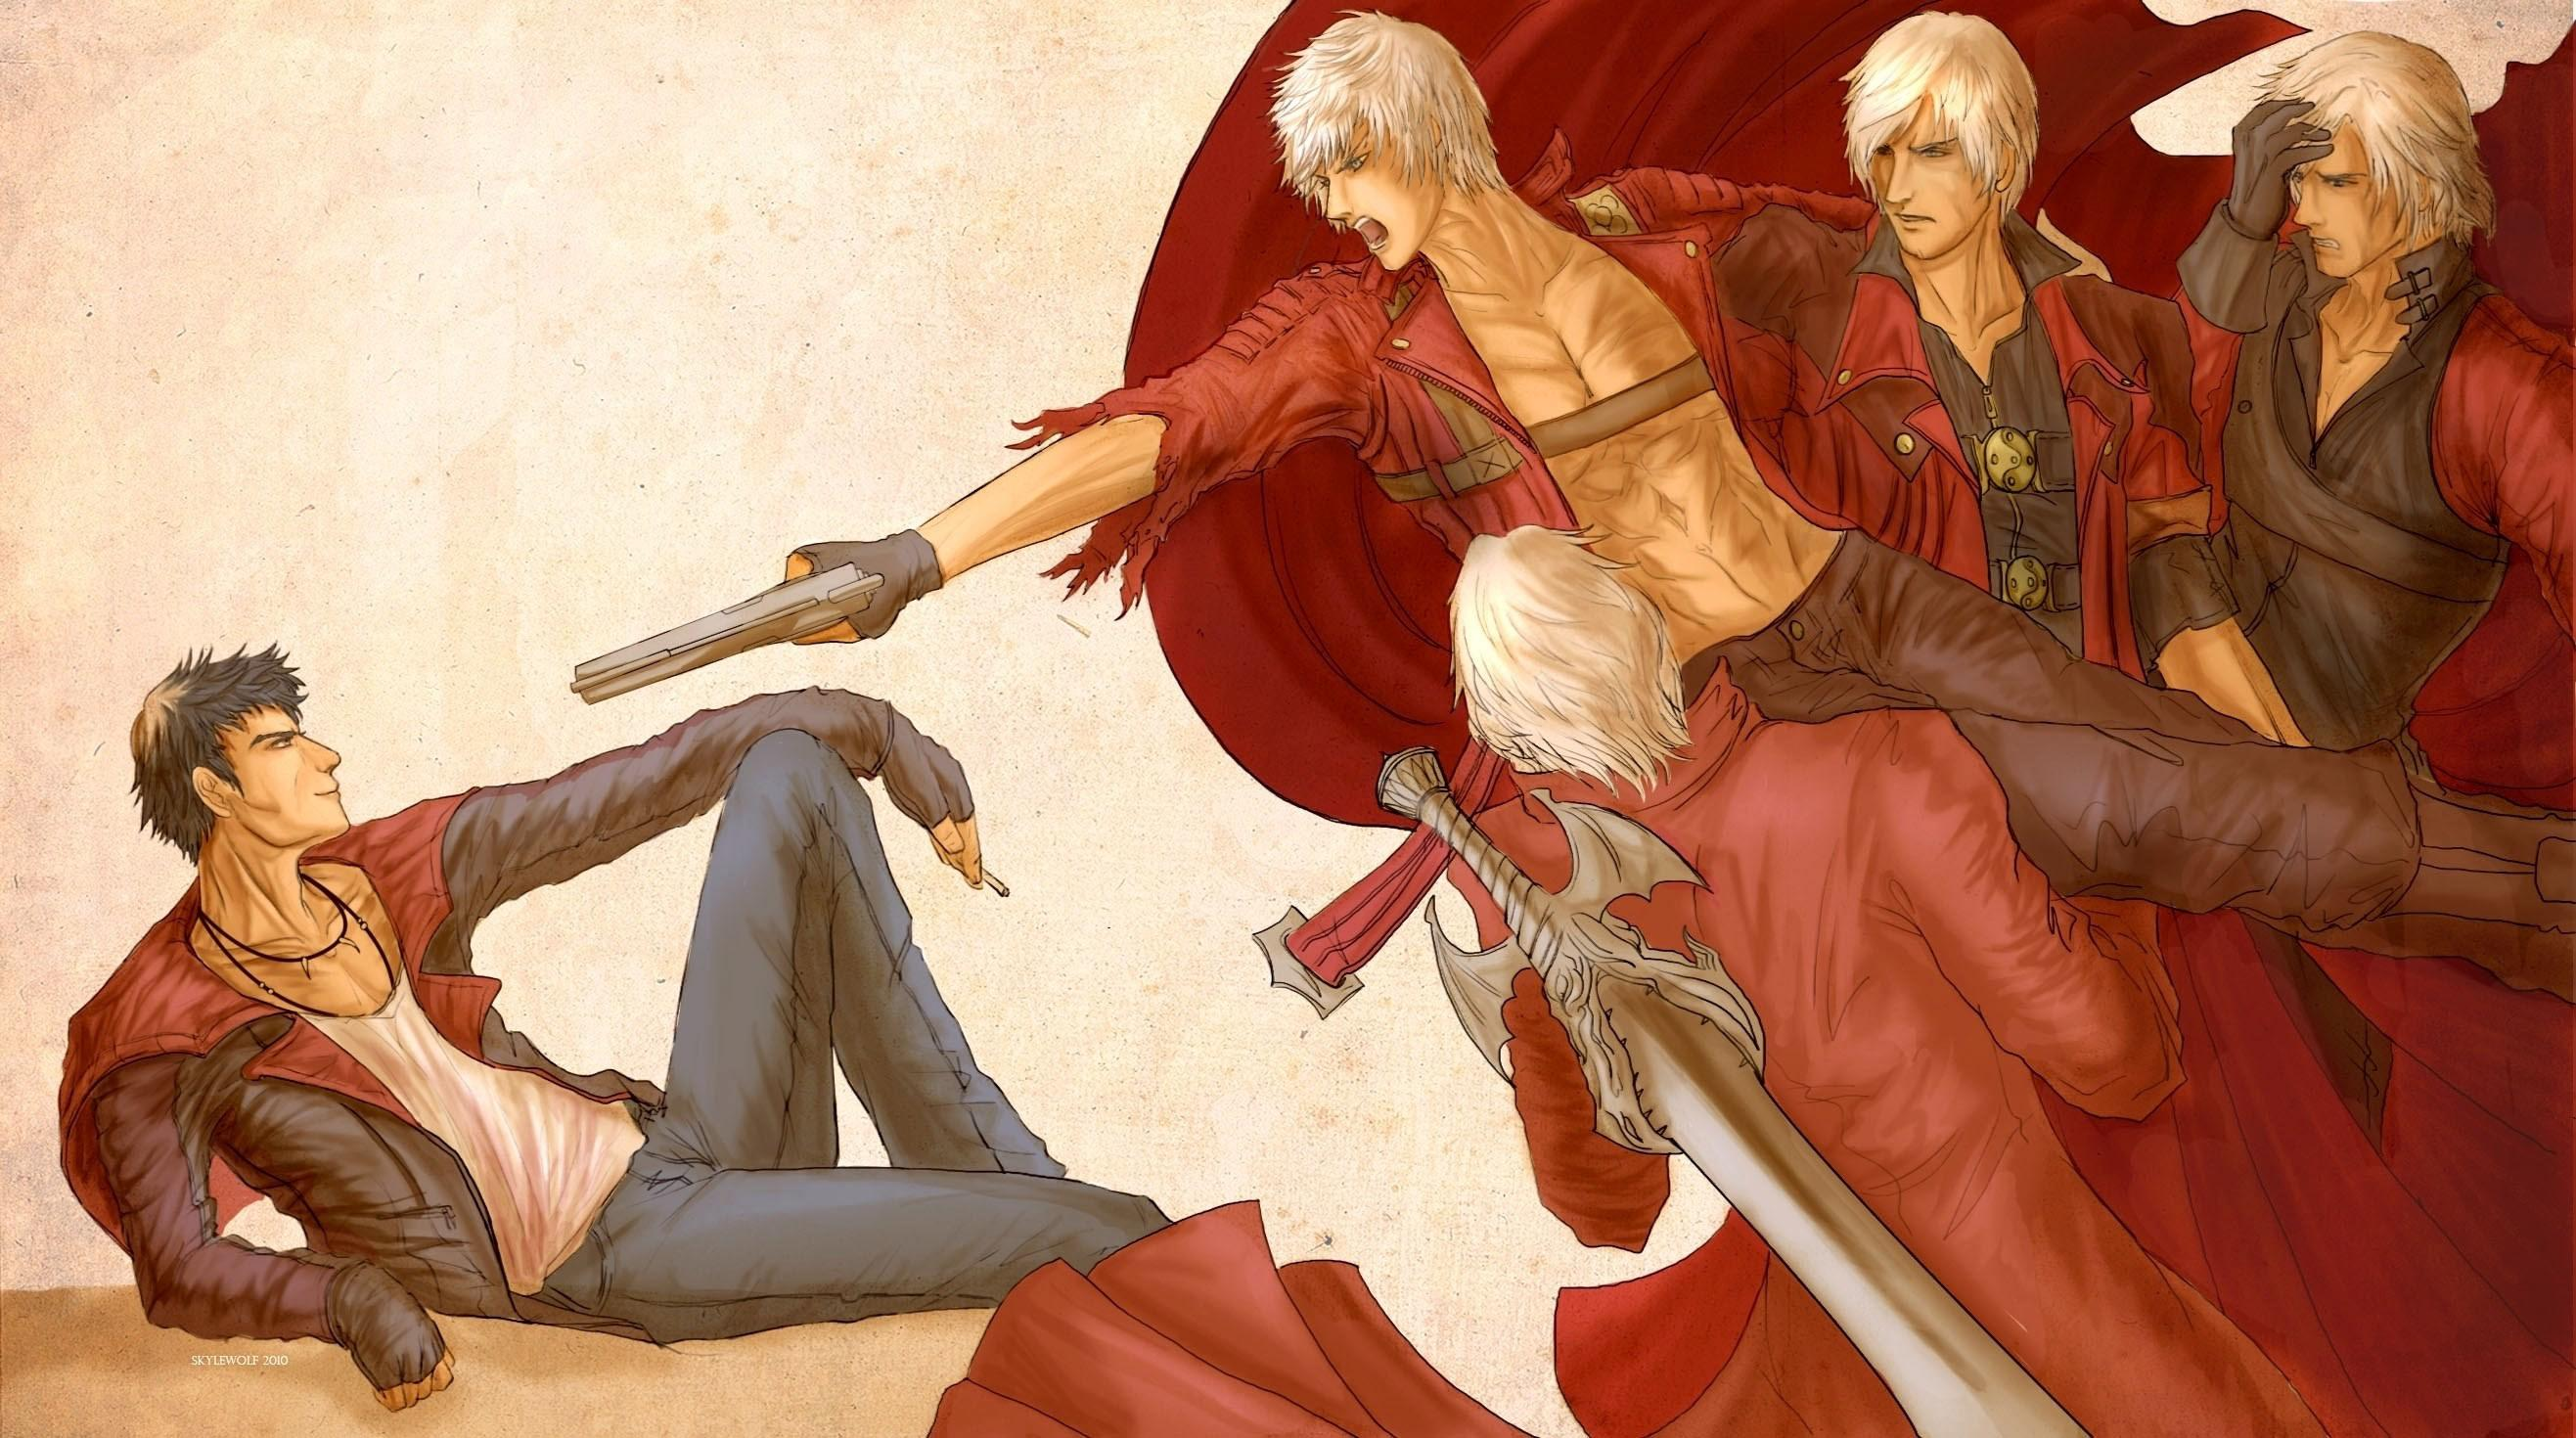 Devil May Cry dmc v wallpaper x